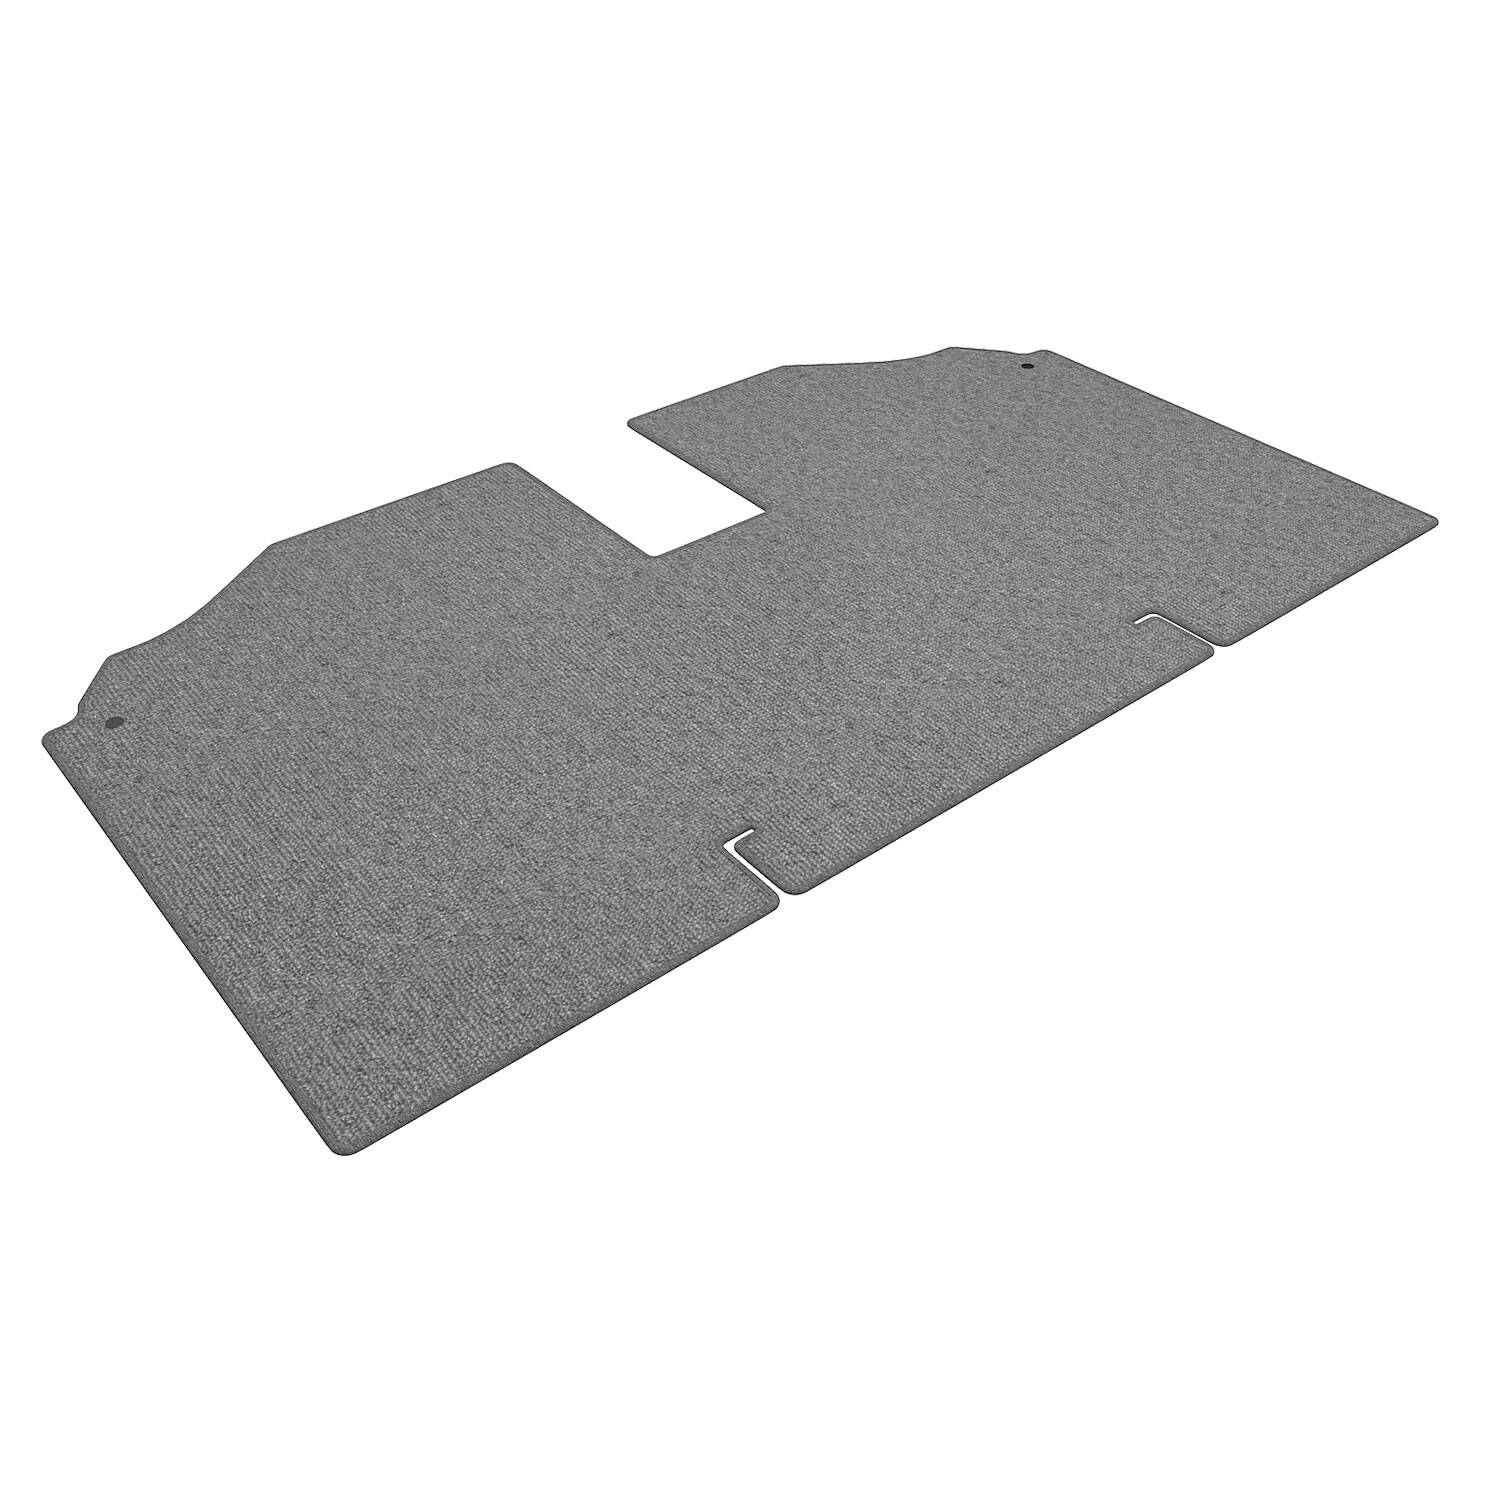 e6® Carpet Floor Mats